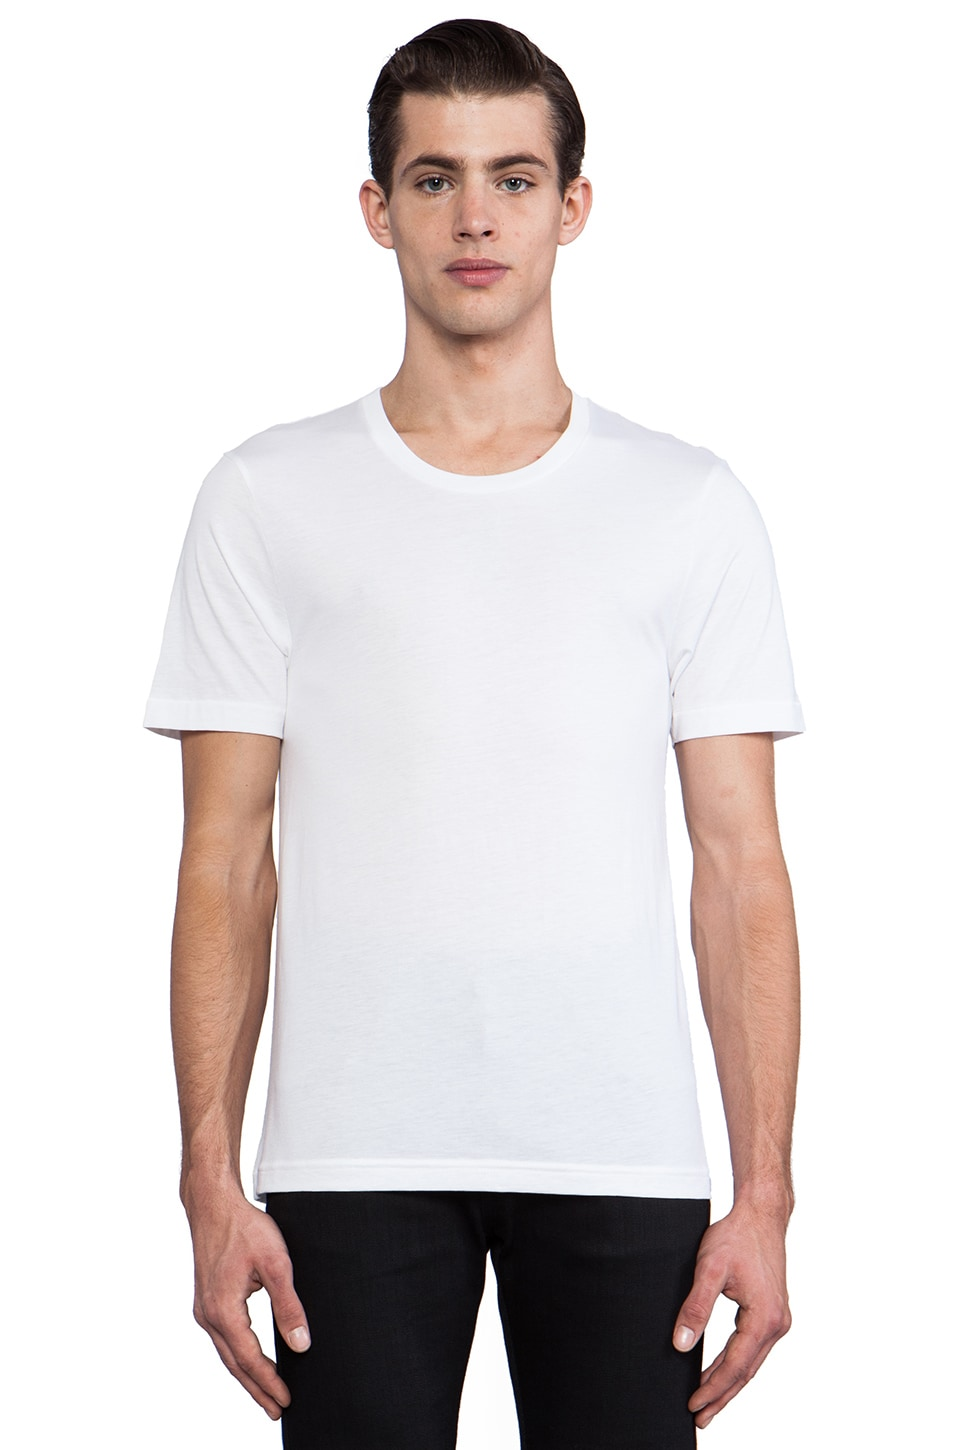 BLK DNM T-Shirt 3 in White